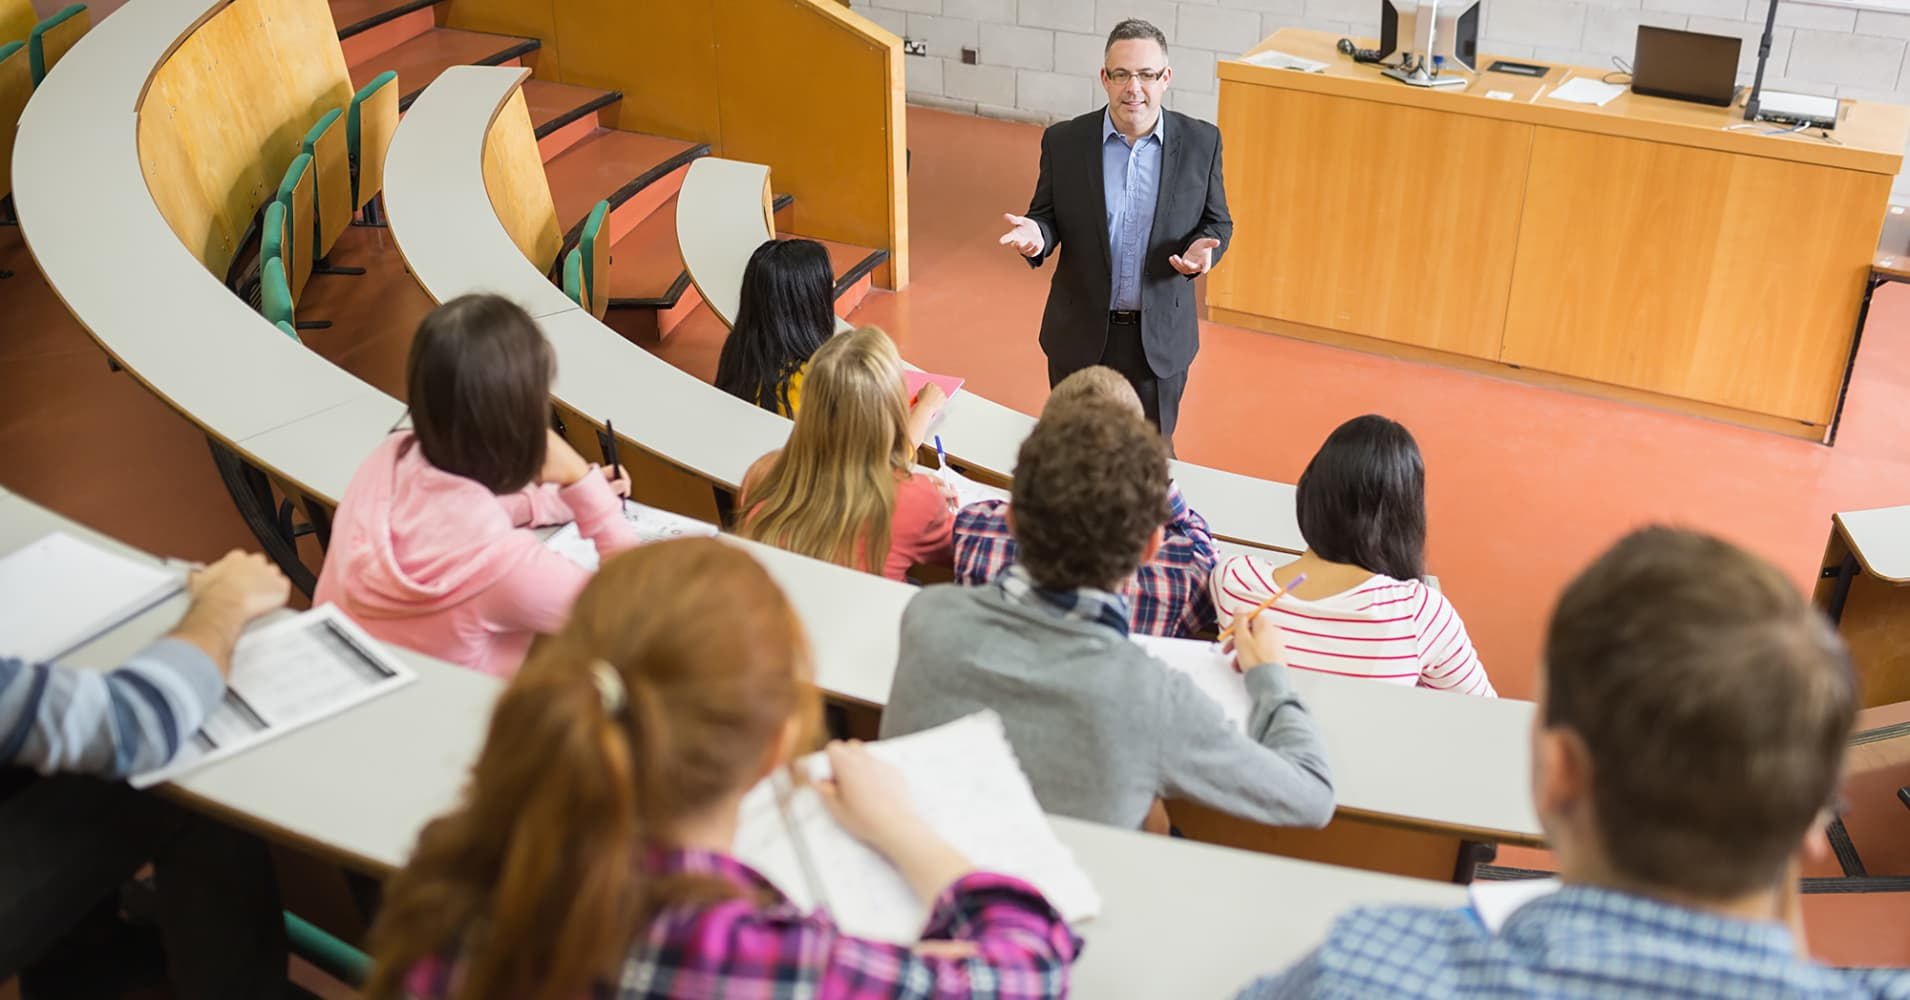 Teacher speaking to students in lecture hall